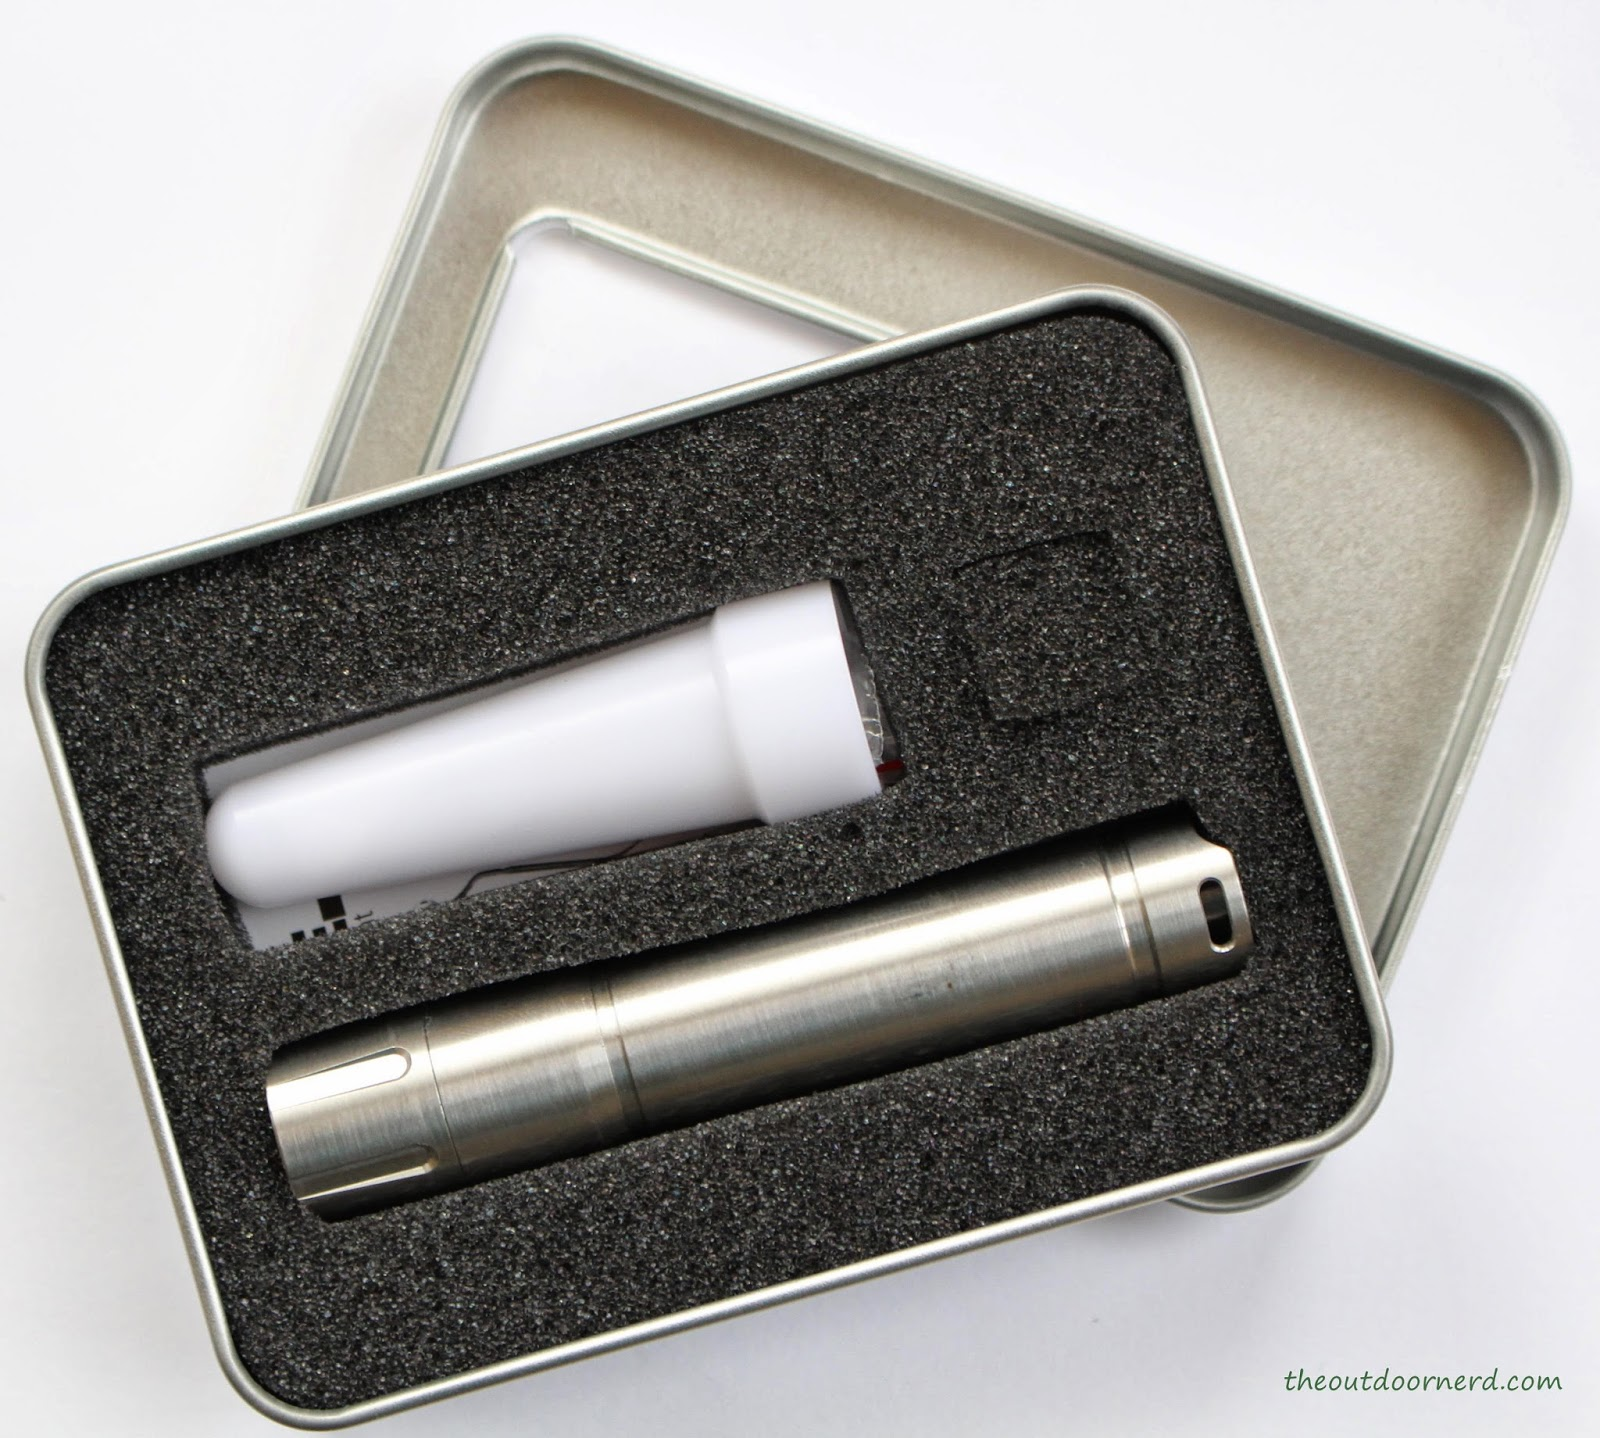 Thrunite T10S 1xAA Flashlight Packaging 2